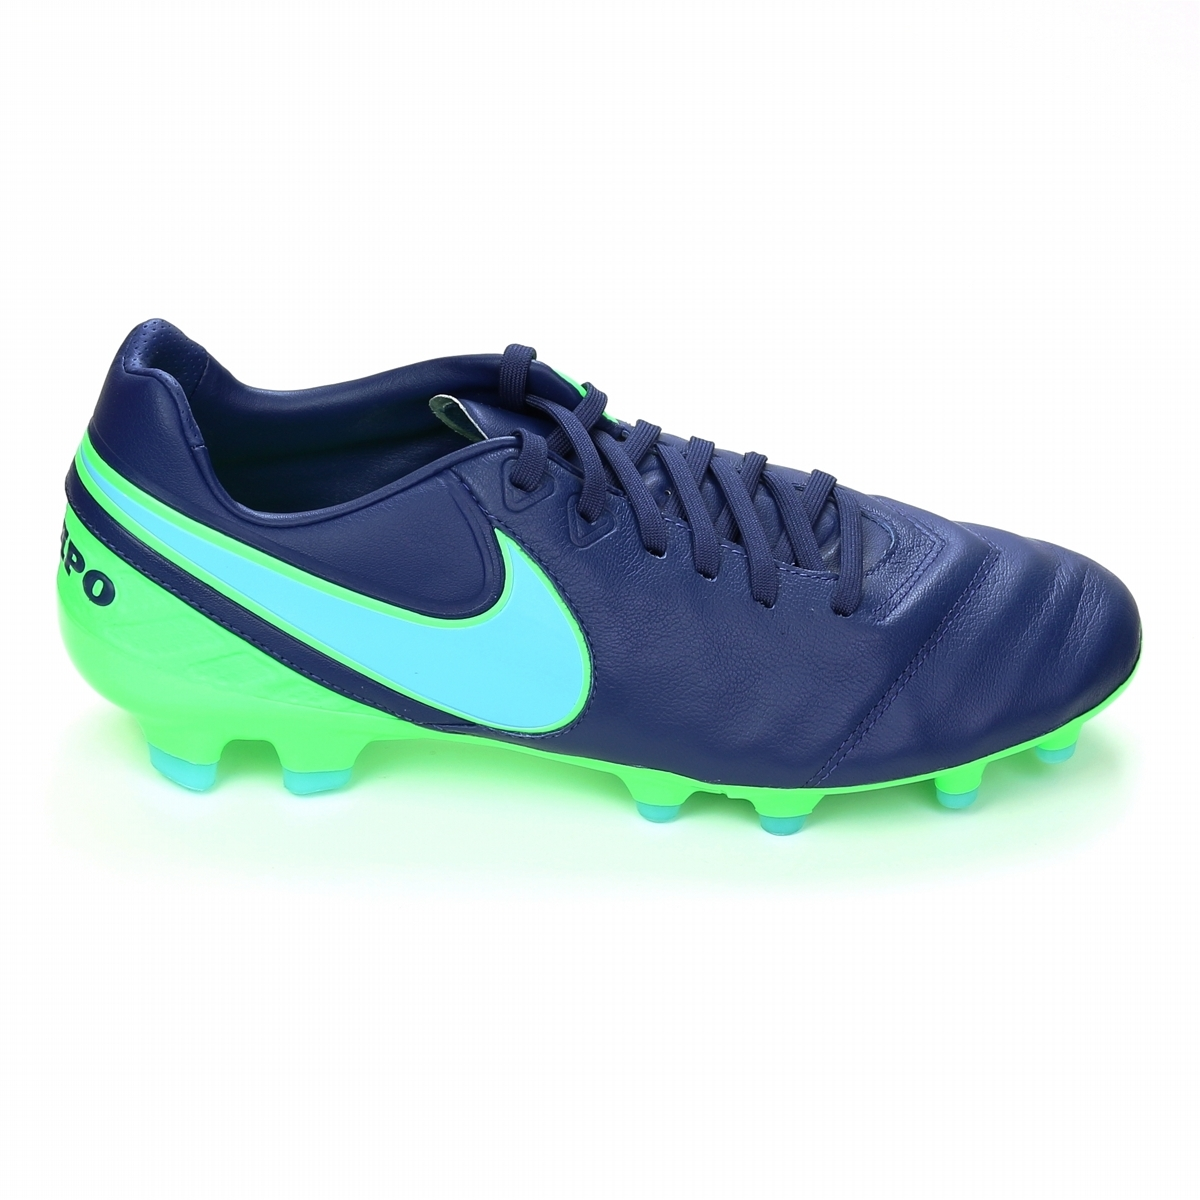 reputable site 184e6 d17ed Nike Tiempo Legacy II FG Soccer Cleats (Coastal Blue Polarized ...